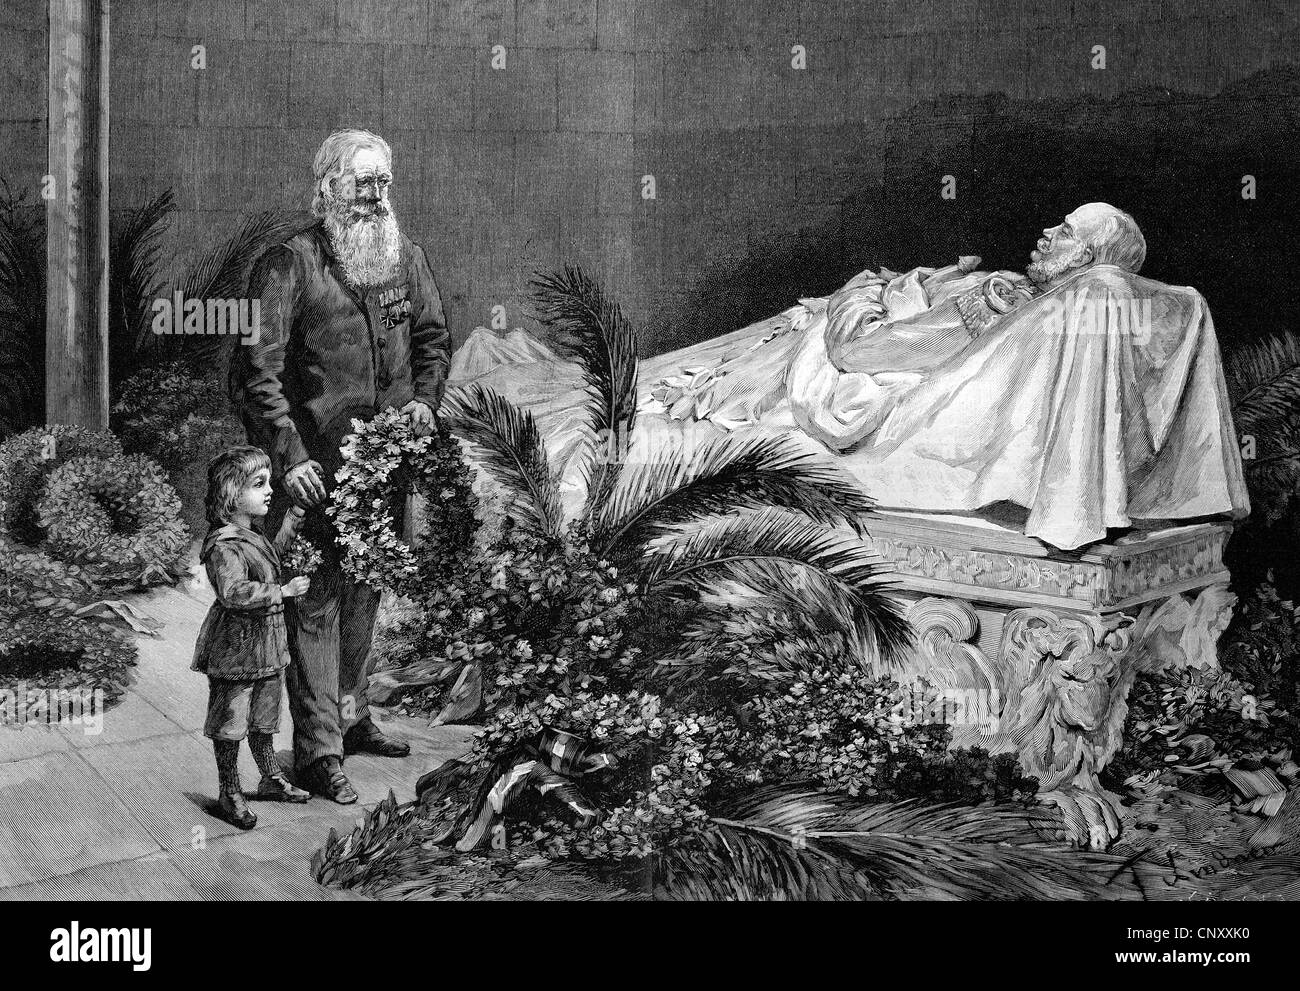 In the crypt of the warlord, historic wood engraving, about 1897 - Stock Image